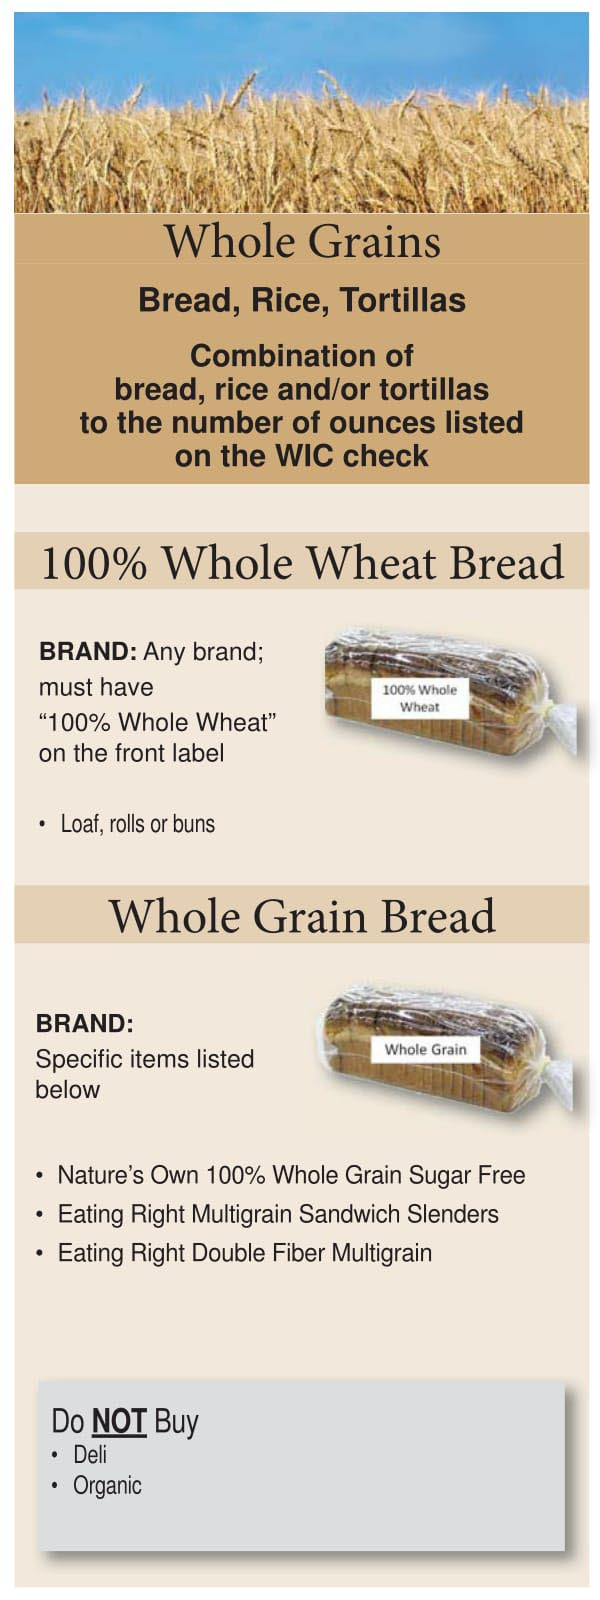 Colorado WIC Food List Whole Grains, Bread, Wheat Bread, Rice and Tortillas